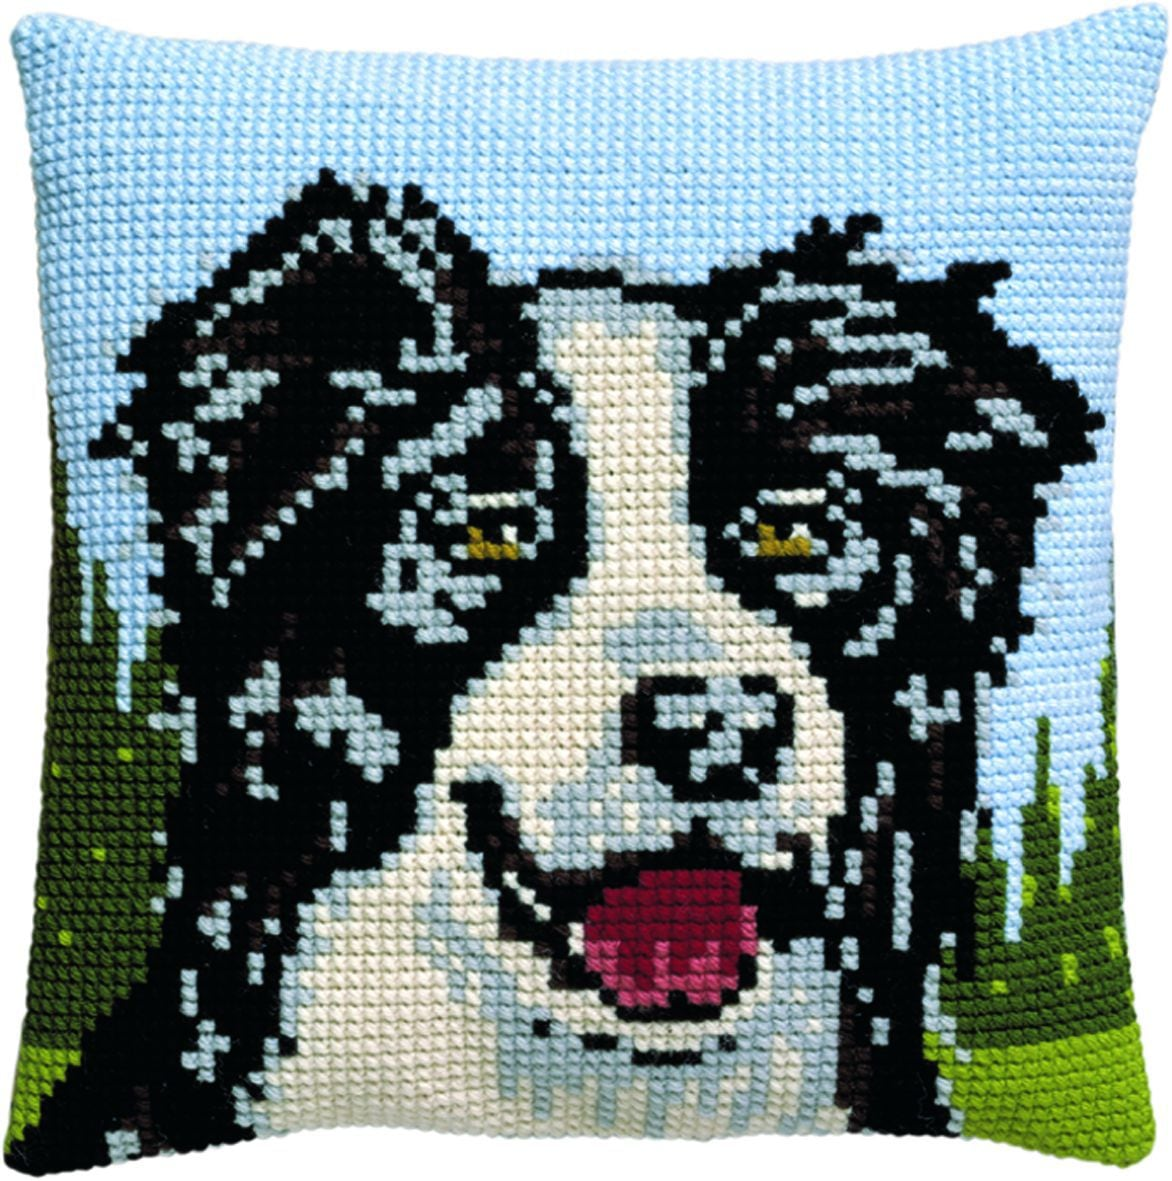 cross stitch cushion border collie printed